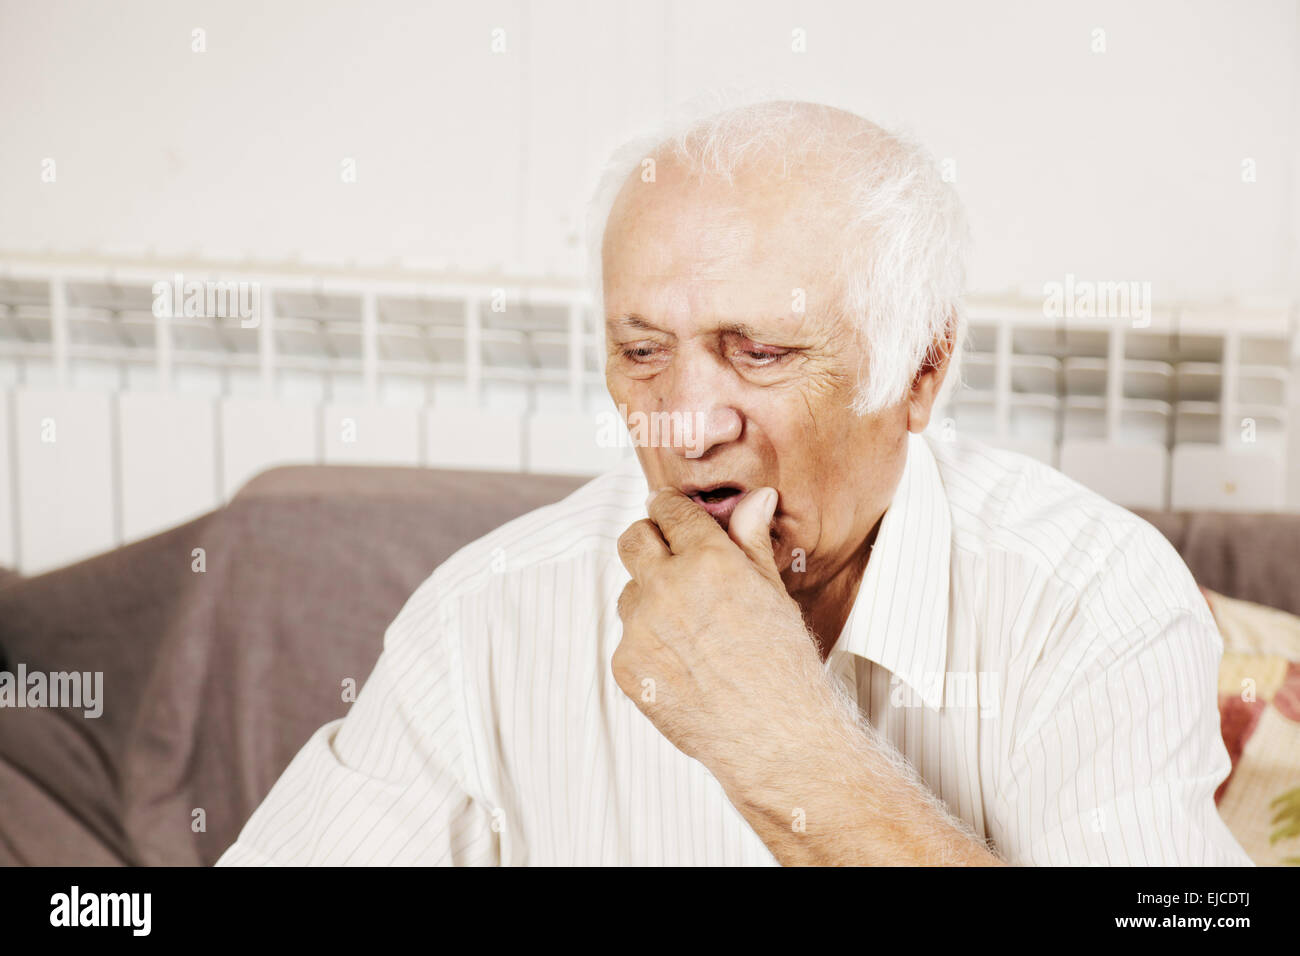 Old man in thoughts - Stock Image